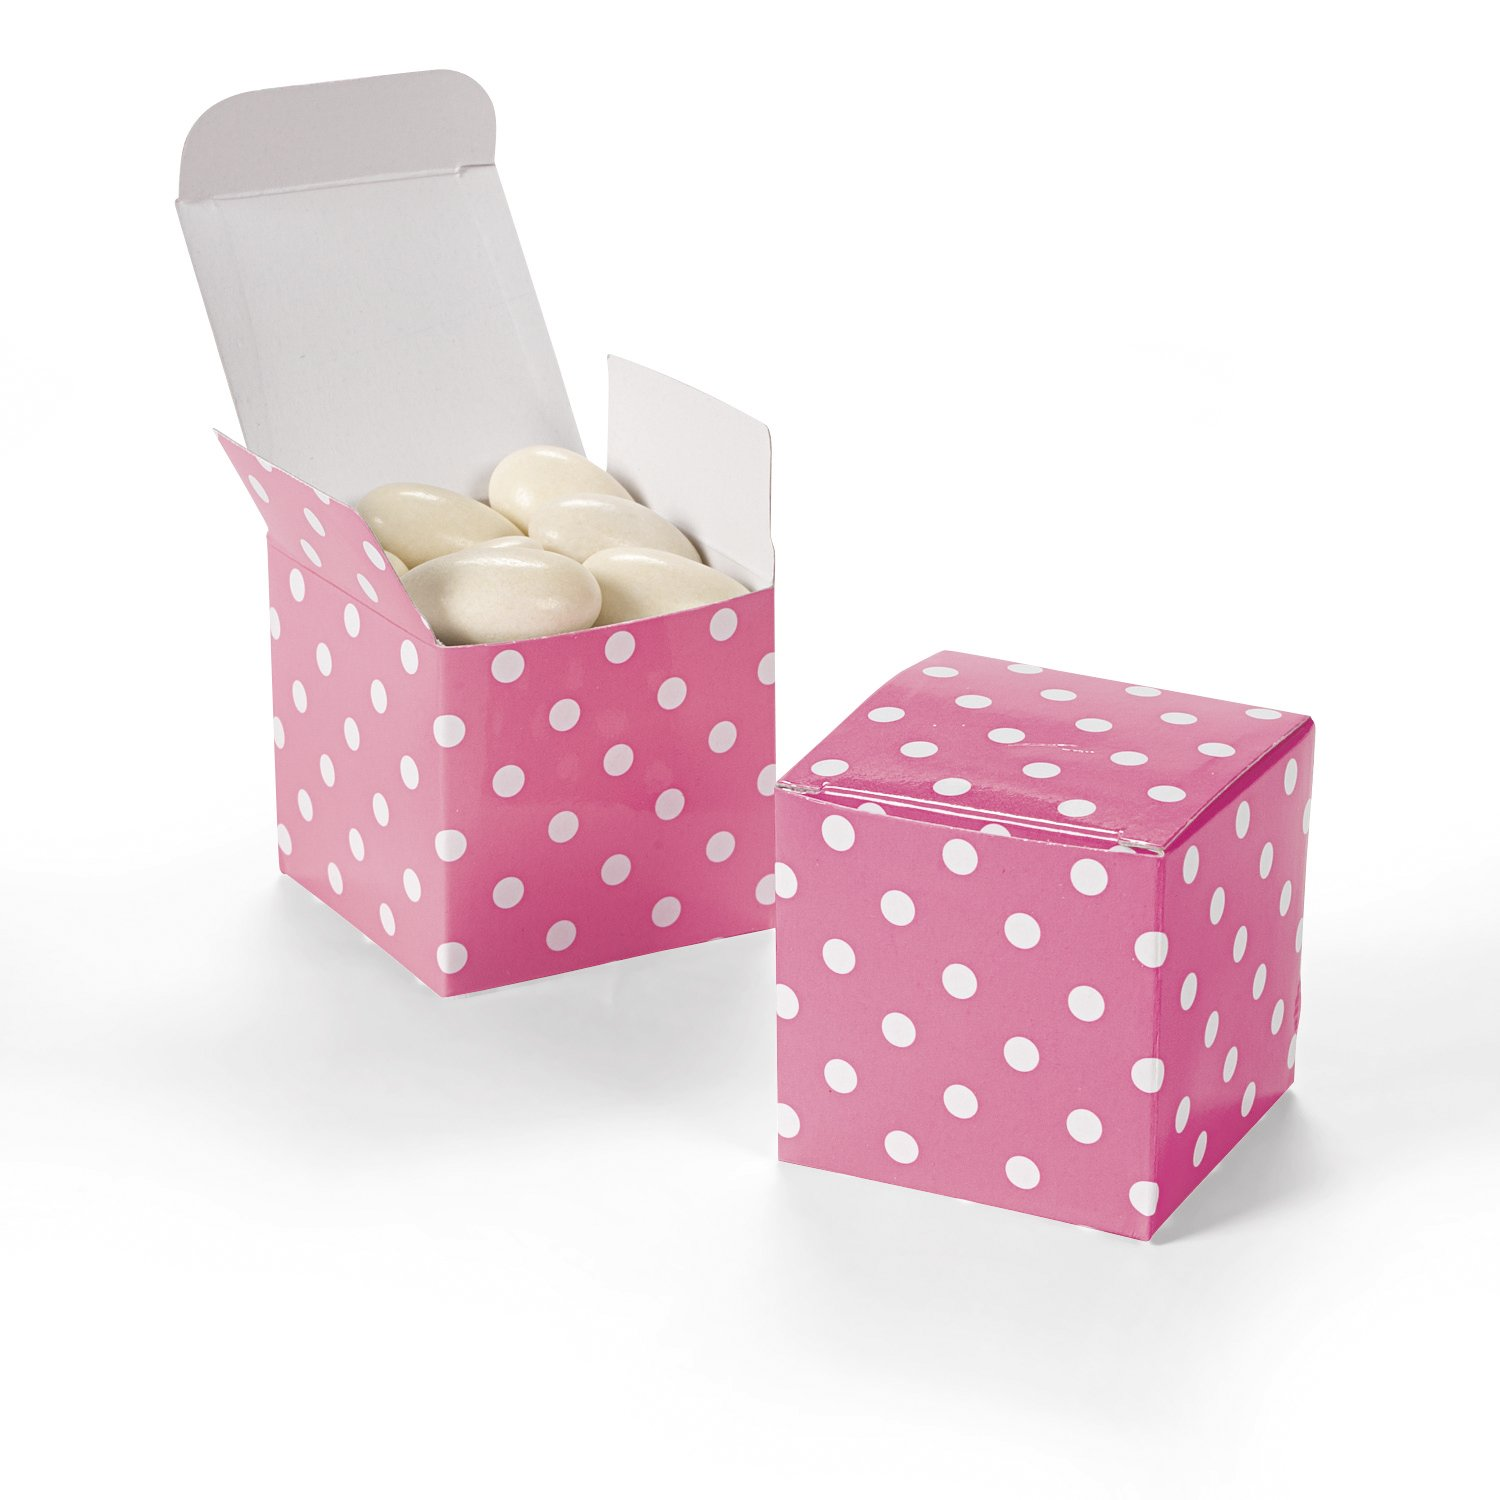 Pink Gift Boxes: Amazon.com